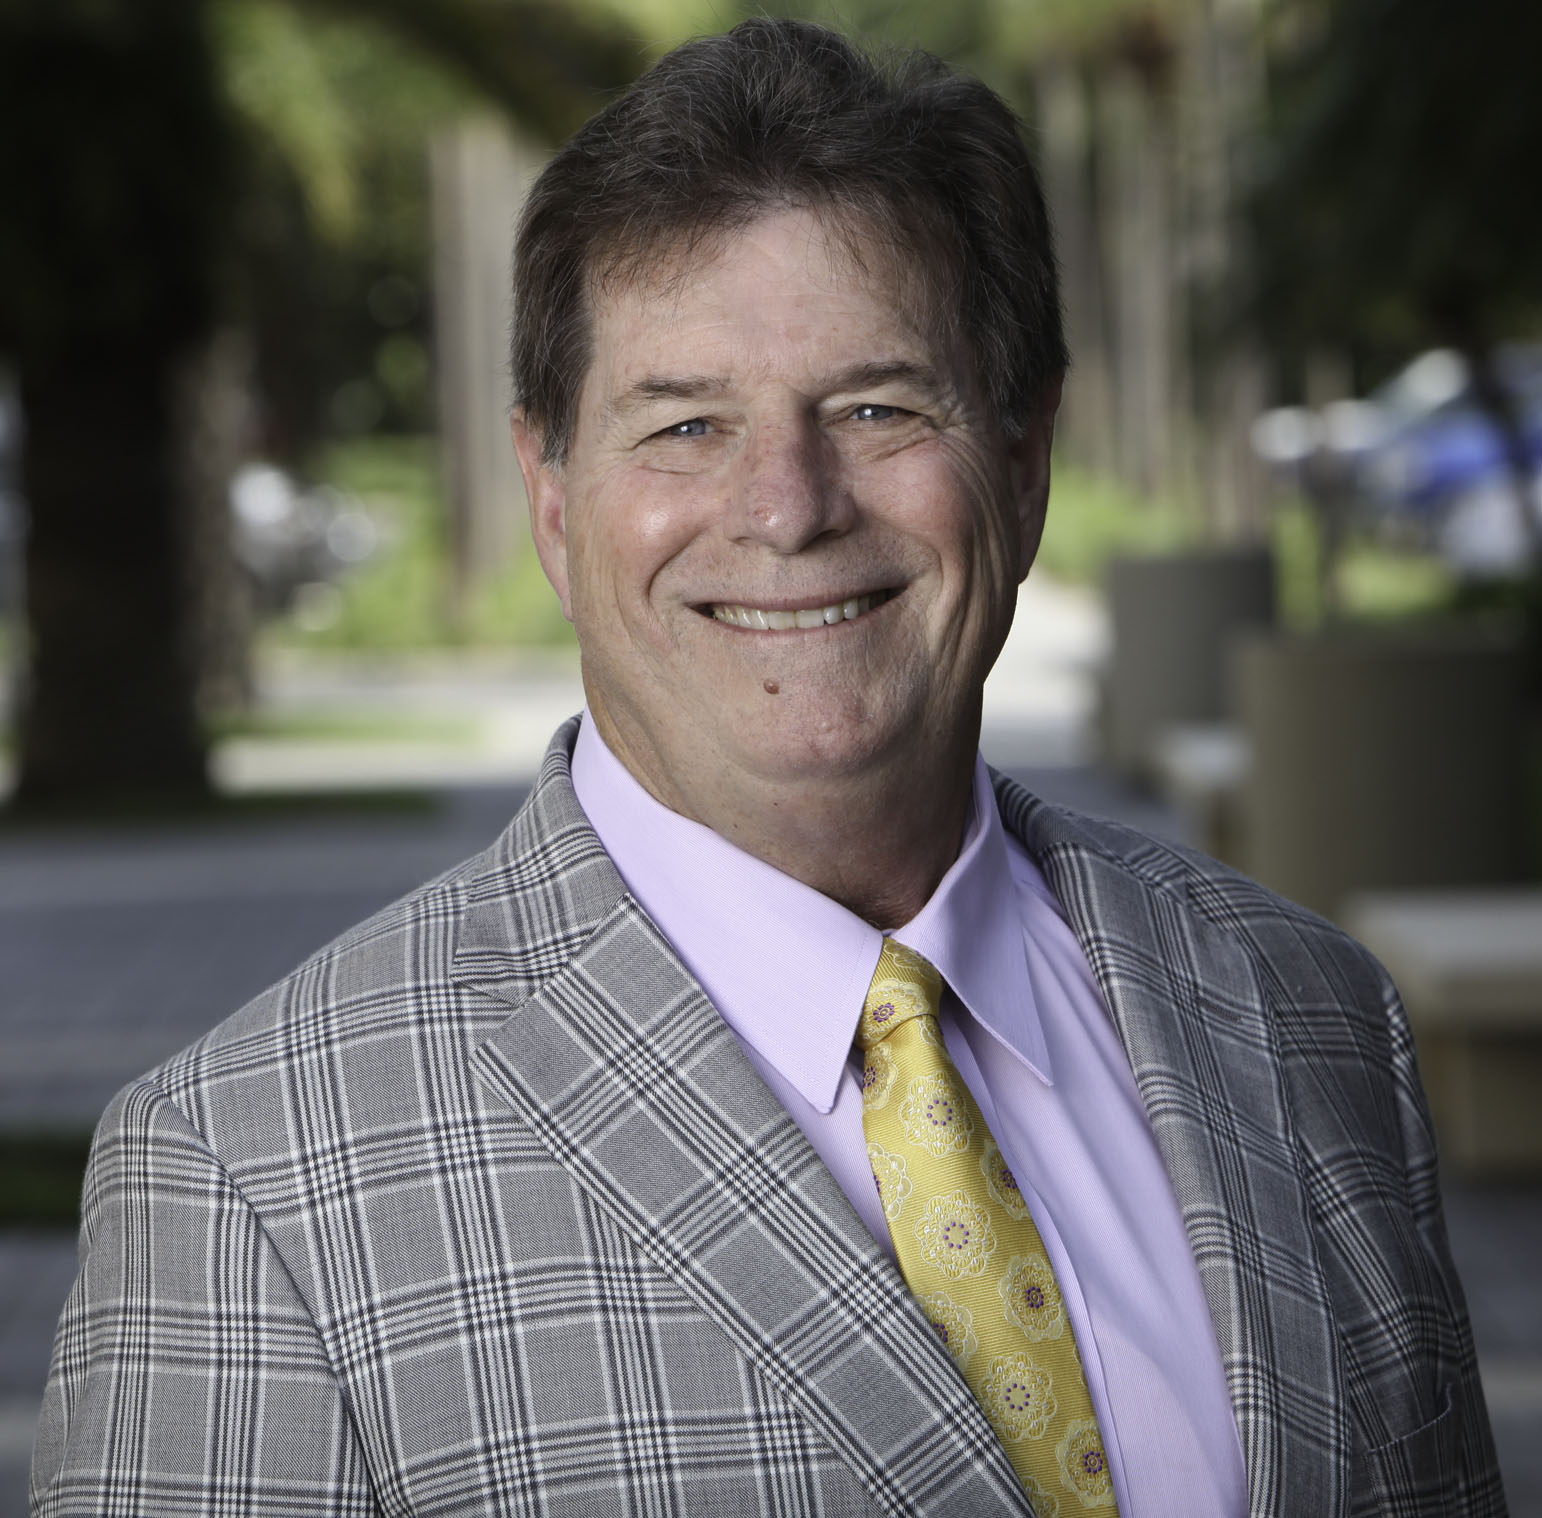 Frank W. Crum, Jr., President and CEO